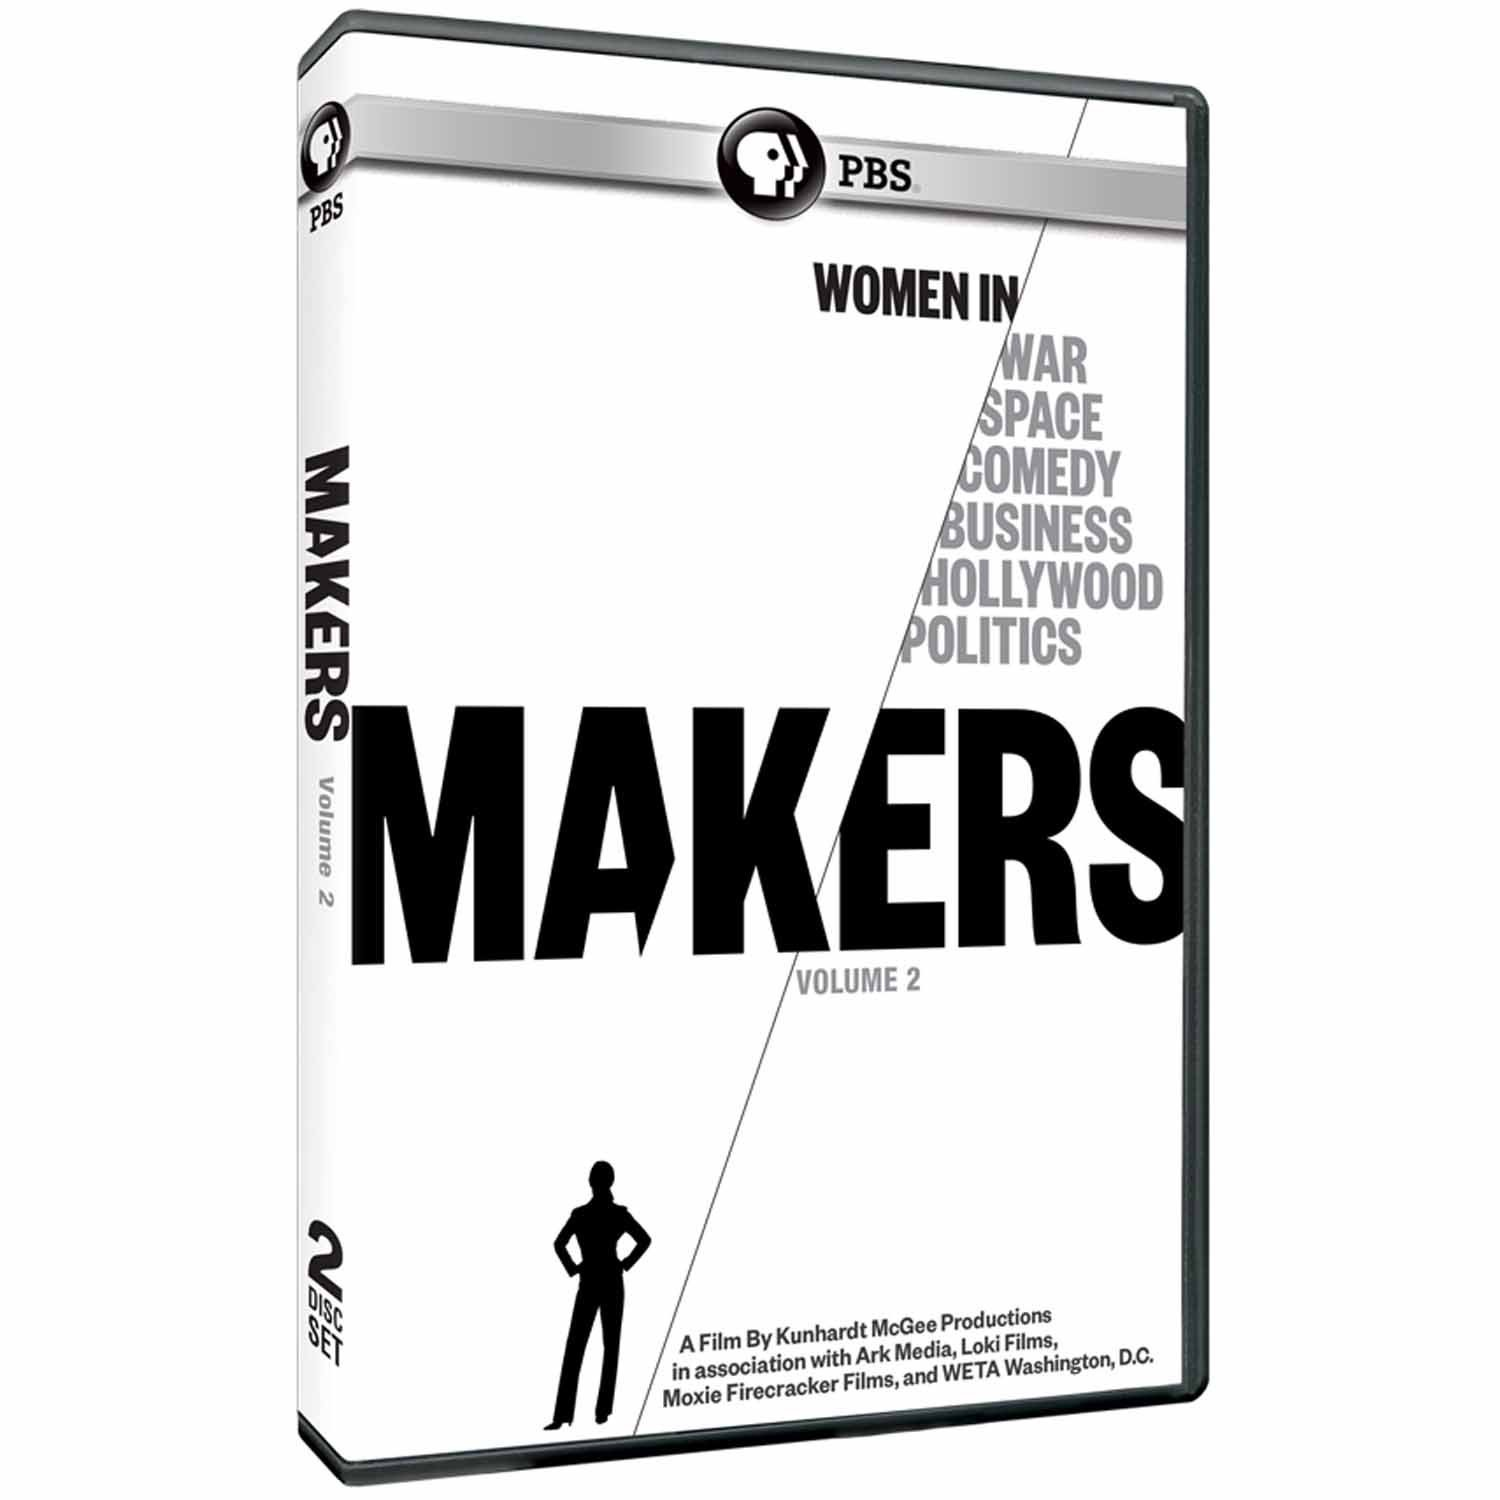 Makers. Volume 2, Women in war, space, comedy, business, Hollywood, politics